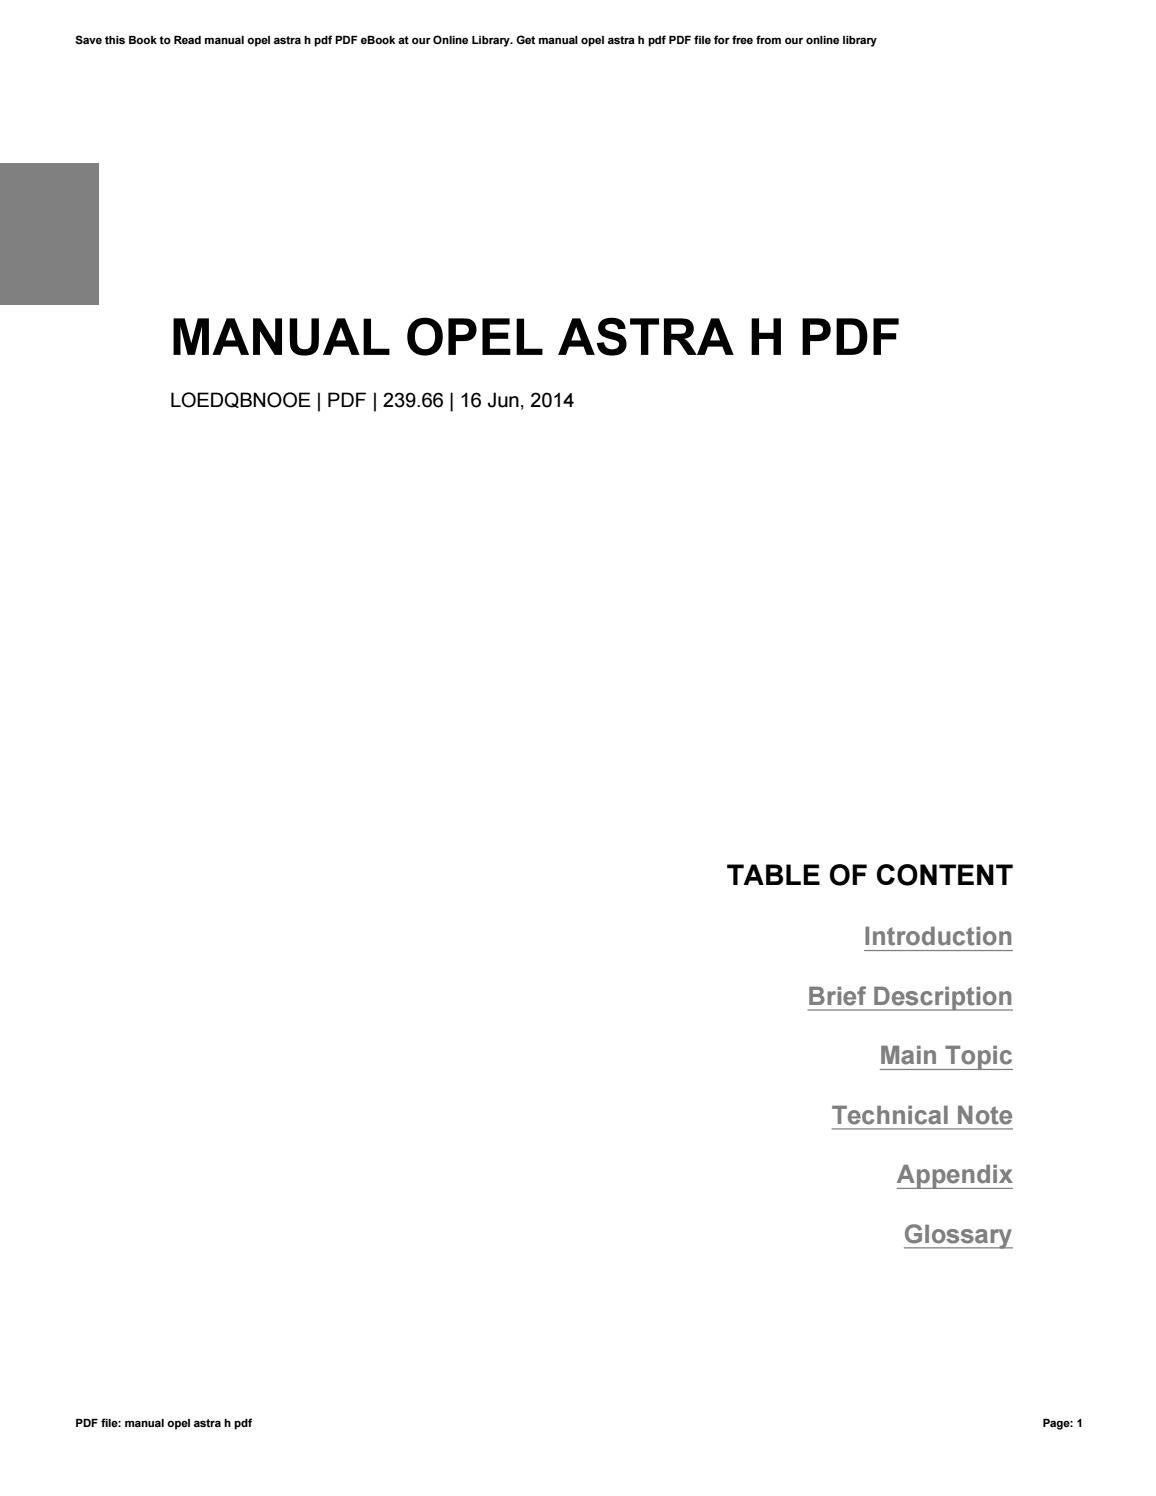 Pdf vauxhall/opel astra workshop service manual 2004 2005 2006.